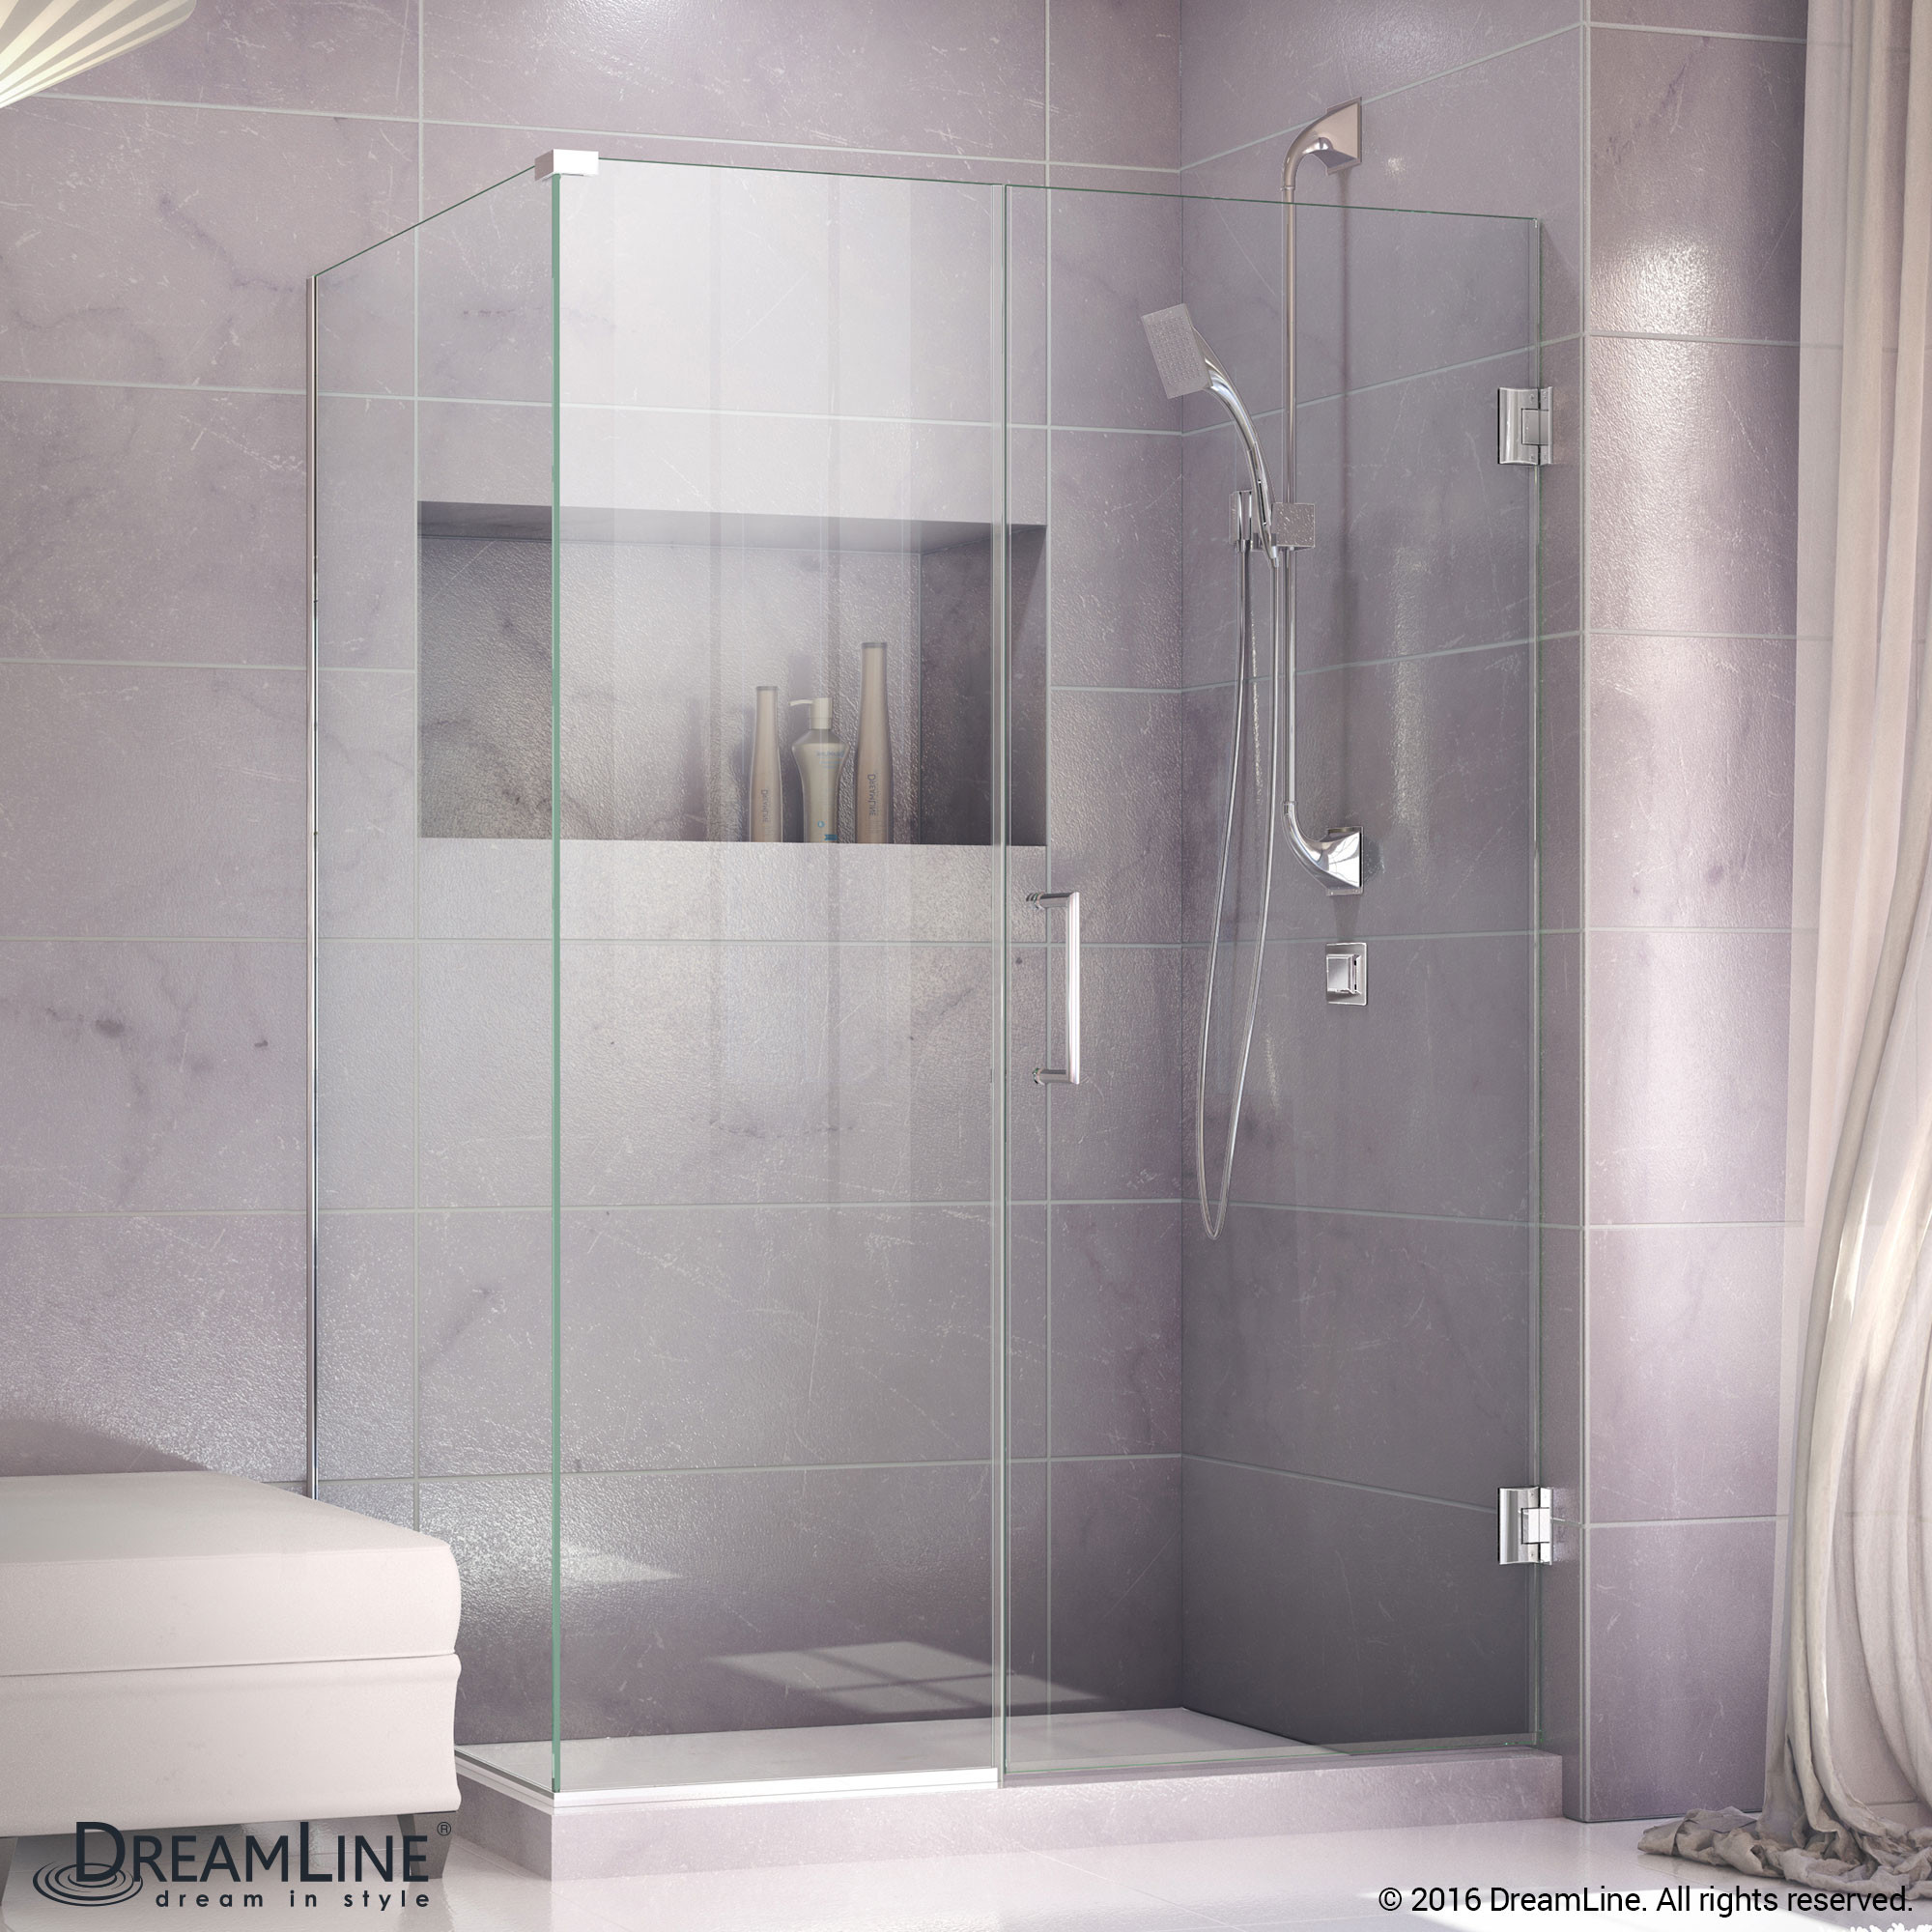 DreamLine SHEN-24560300-01 Unidoor Plus Hinged Shower Enclosure In Chrome Finish Hardware